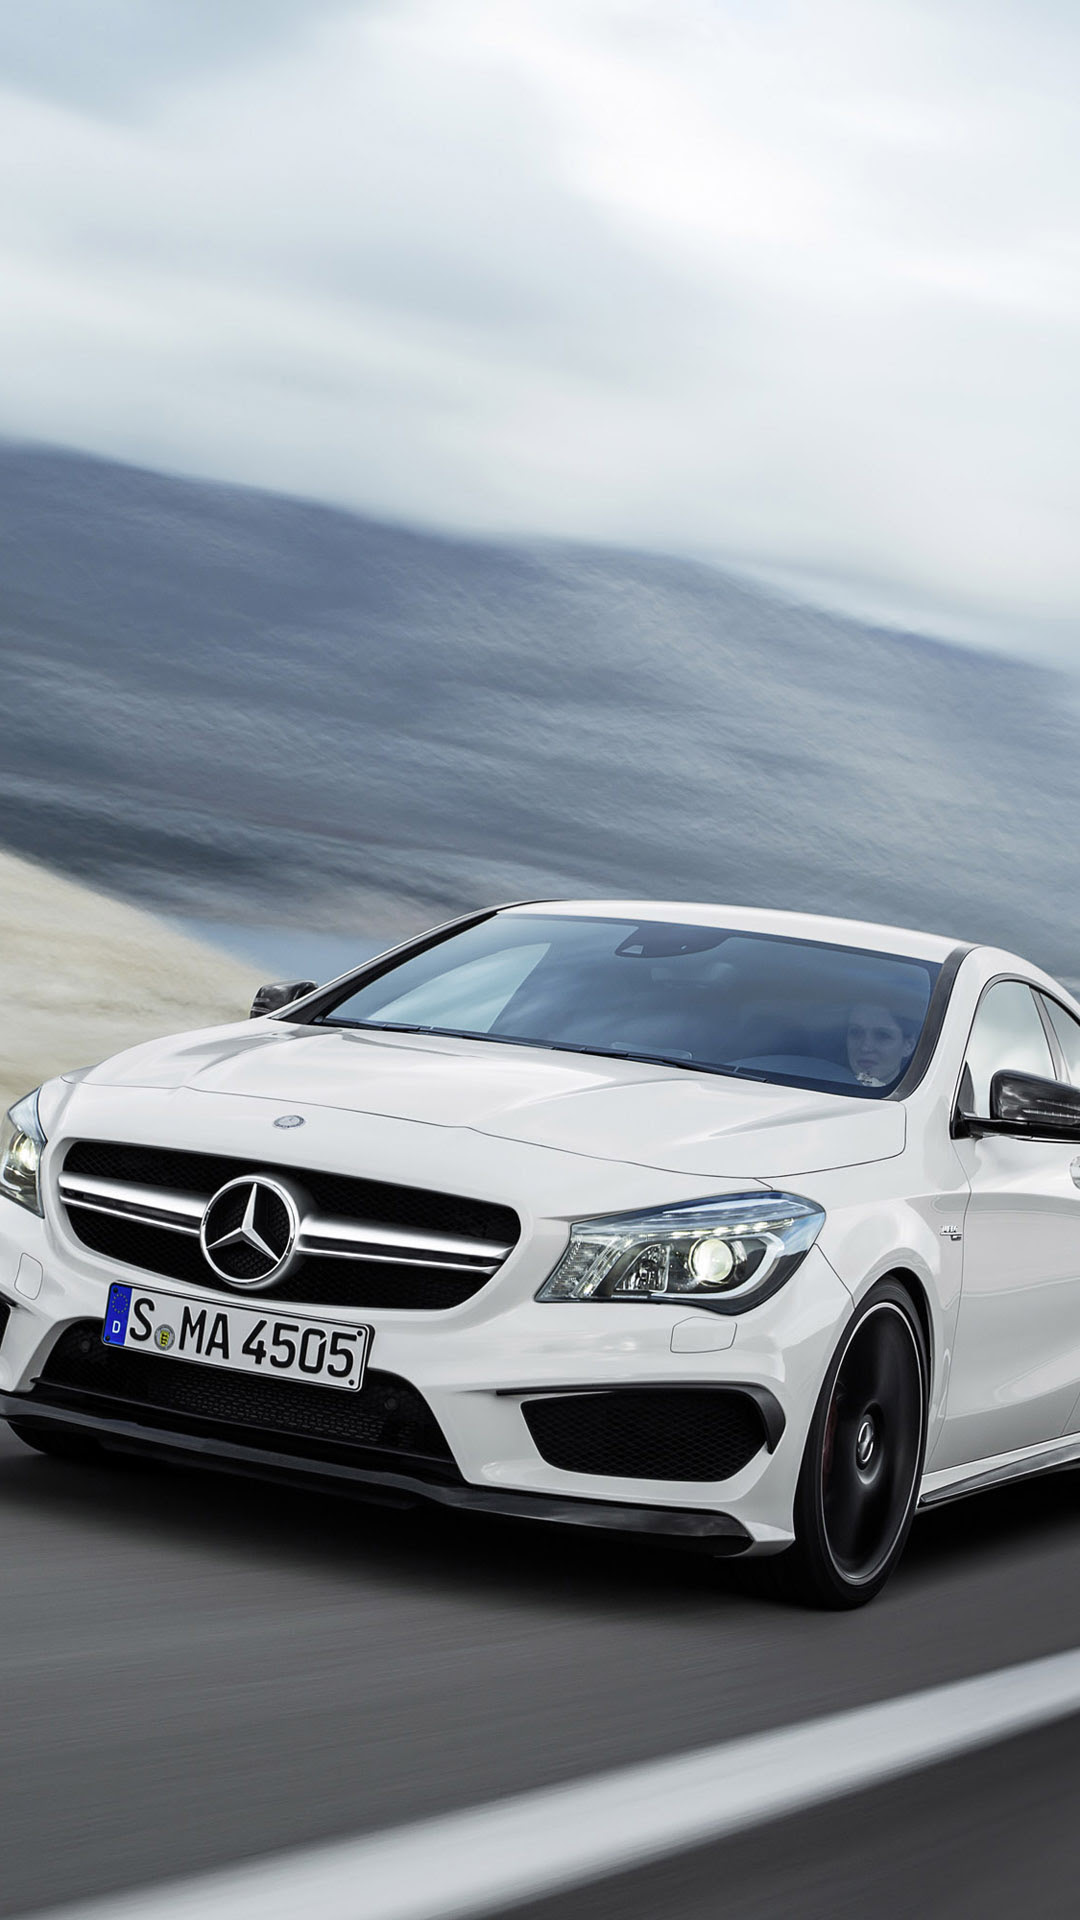 Mercedes Benz Cla 45 Amg Best Htc One Wallpapers Free And Easy To Download